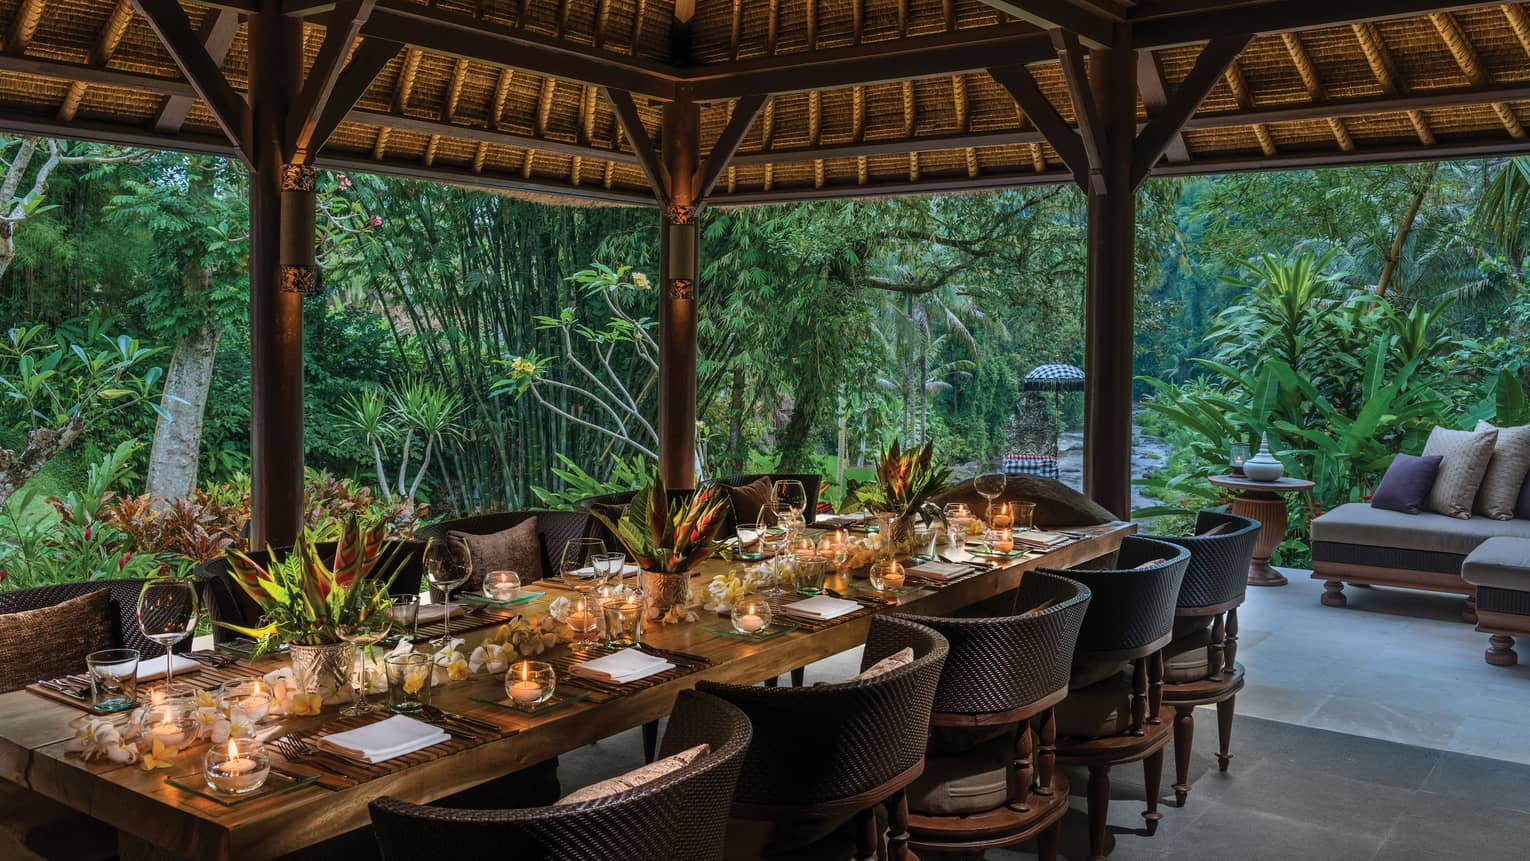 Long private dining table with candles under Royal Villa outdoor pavilion